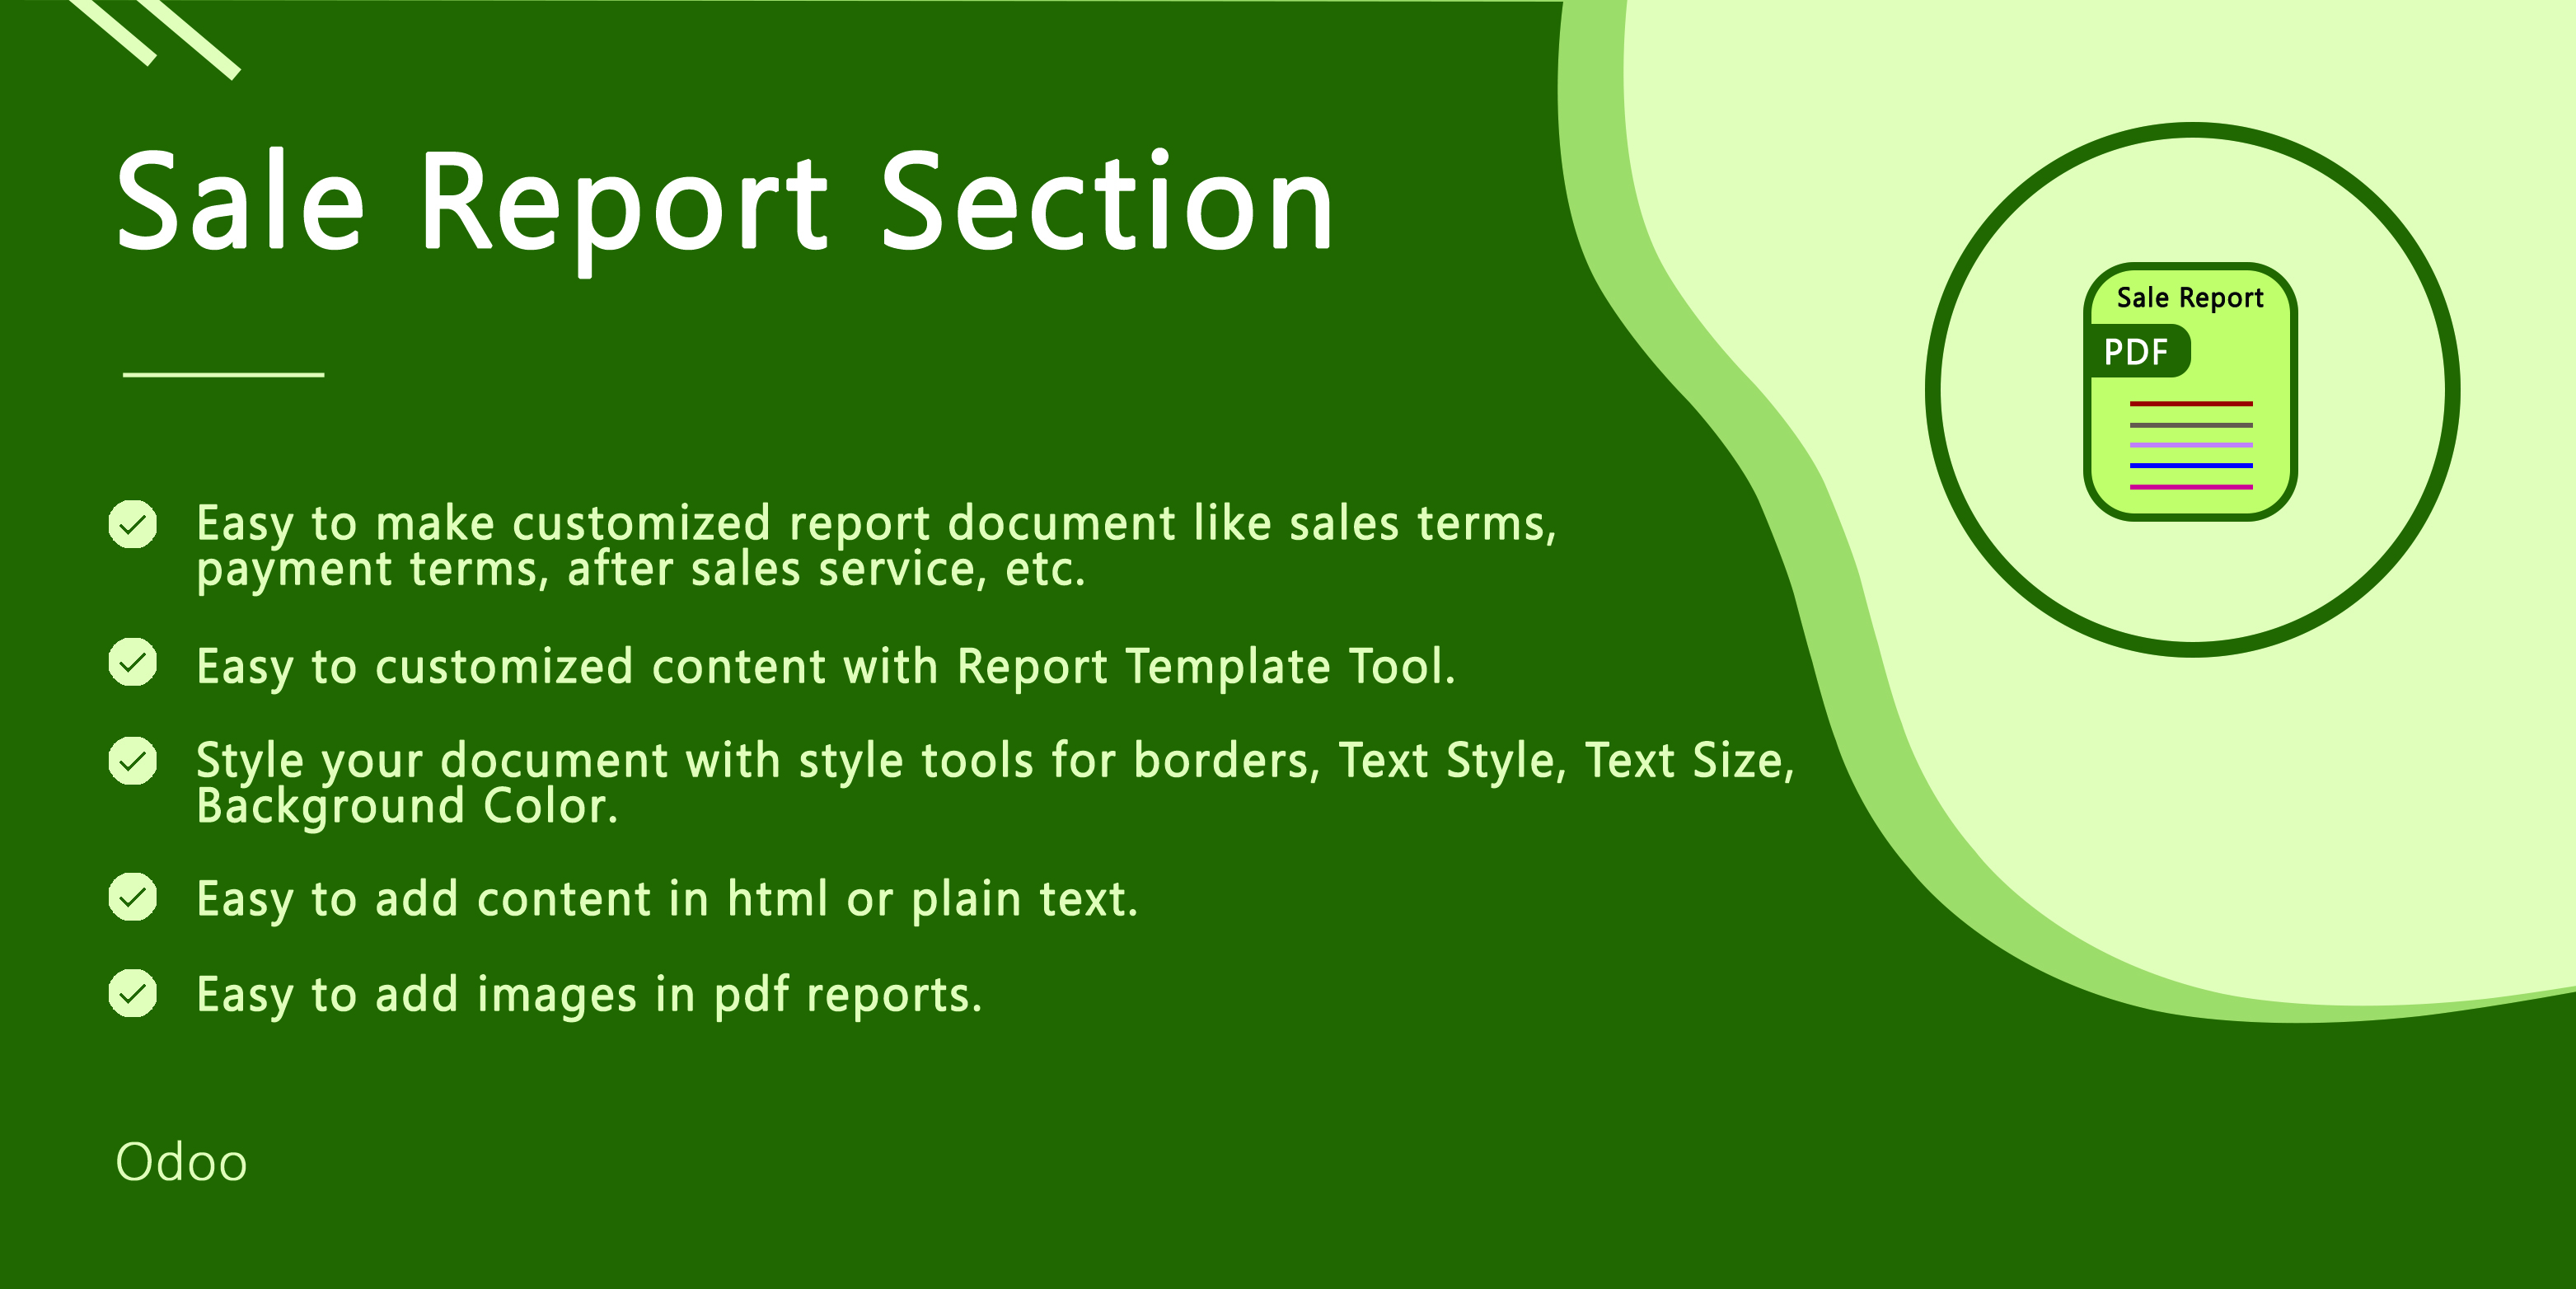 Sale Report Section